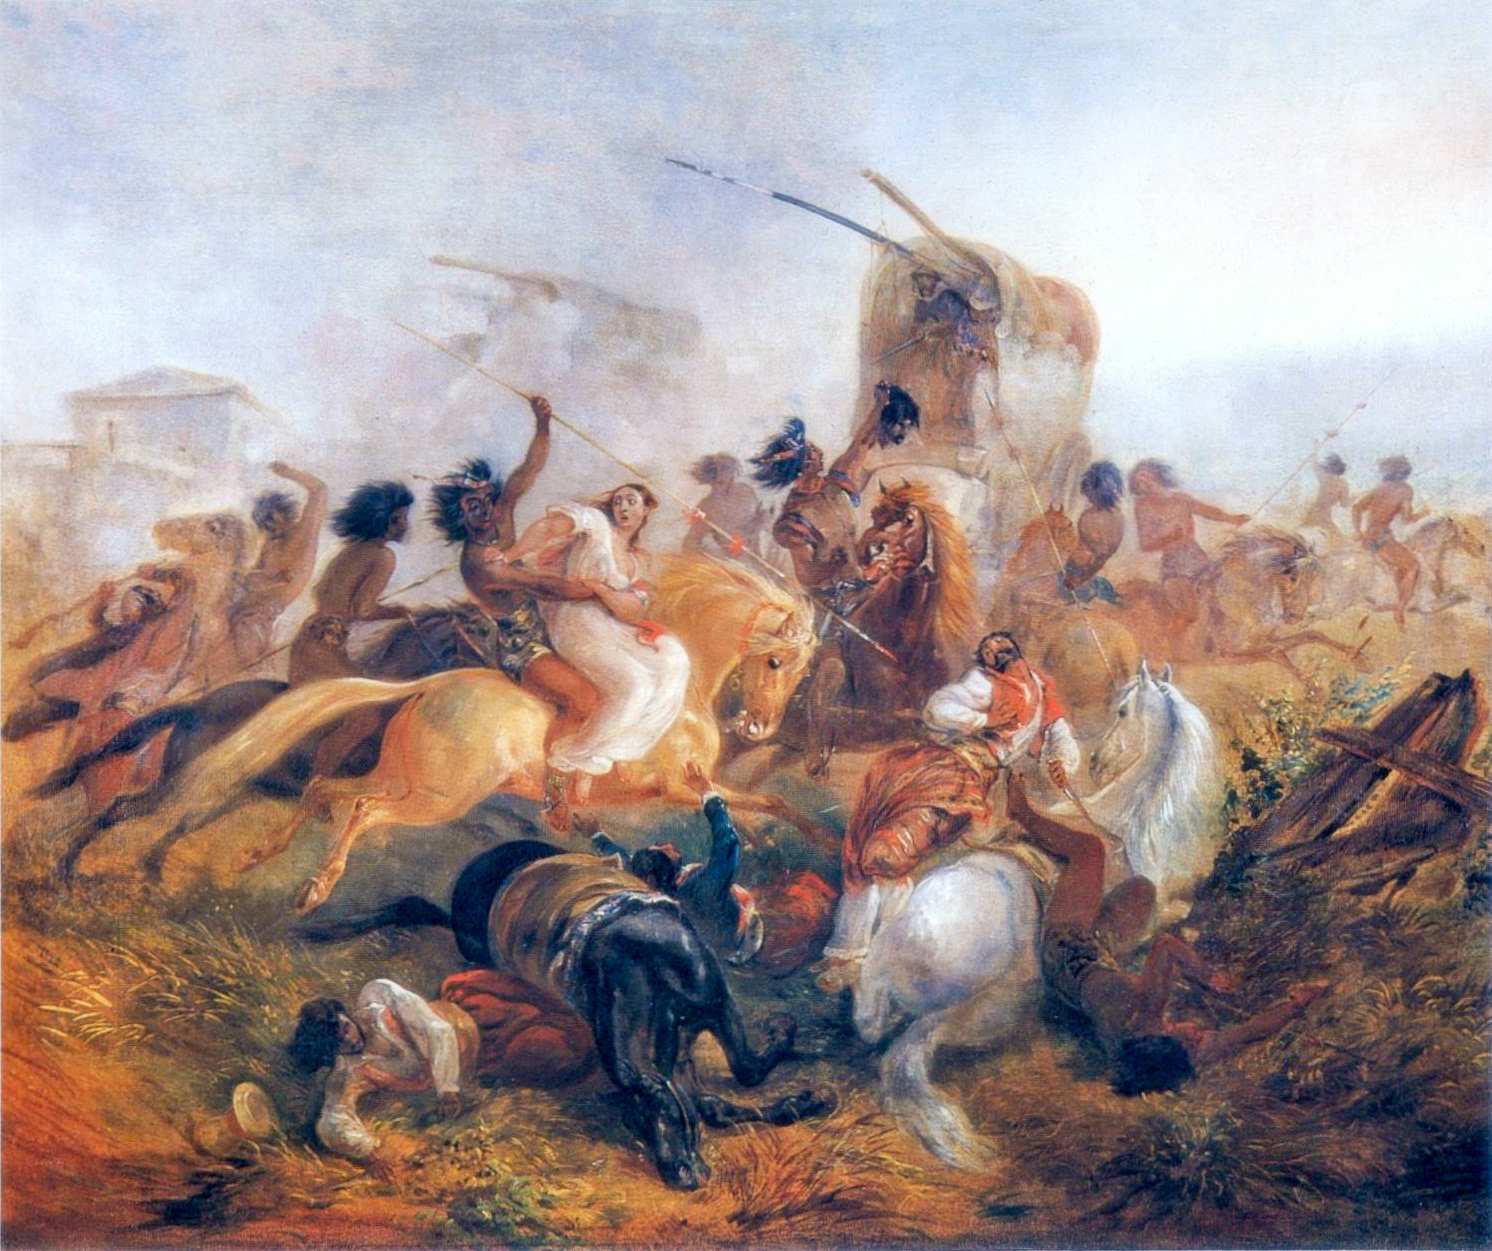 Argentine_soldiers_under_Indian_attack_by_Rugendas.jpg